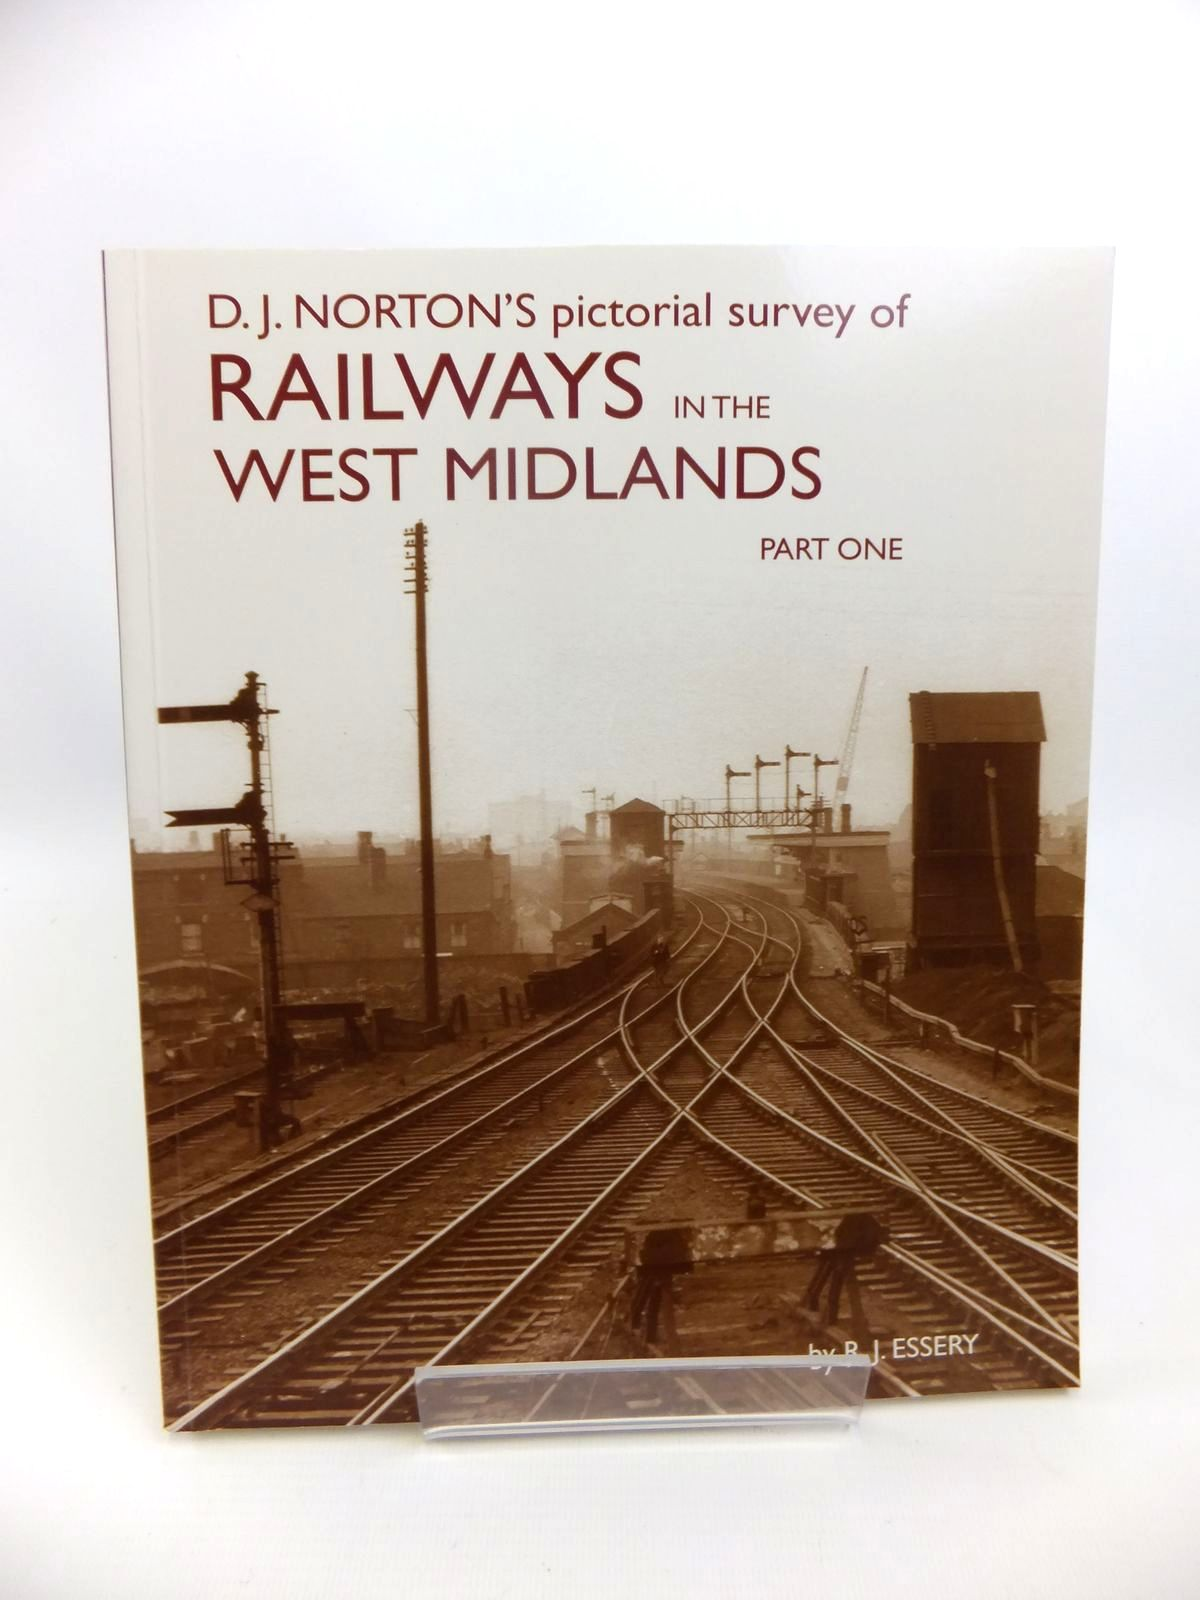 Photo of D.J. NORTON'S PICTORIAL SURVEY OF RAILWAYS IN THE WEST MIDLANDS PART ONE LMS WESTERN DIVISION LINES written by Essery, R.J. published by Wild Swan Publications (STOCK CODE: 1812398)  for sale by Stella & Rose's Books